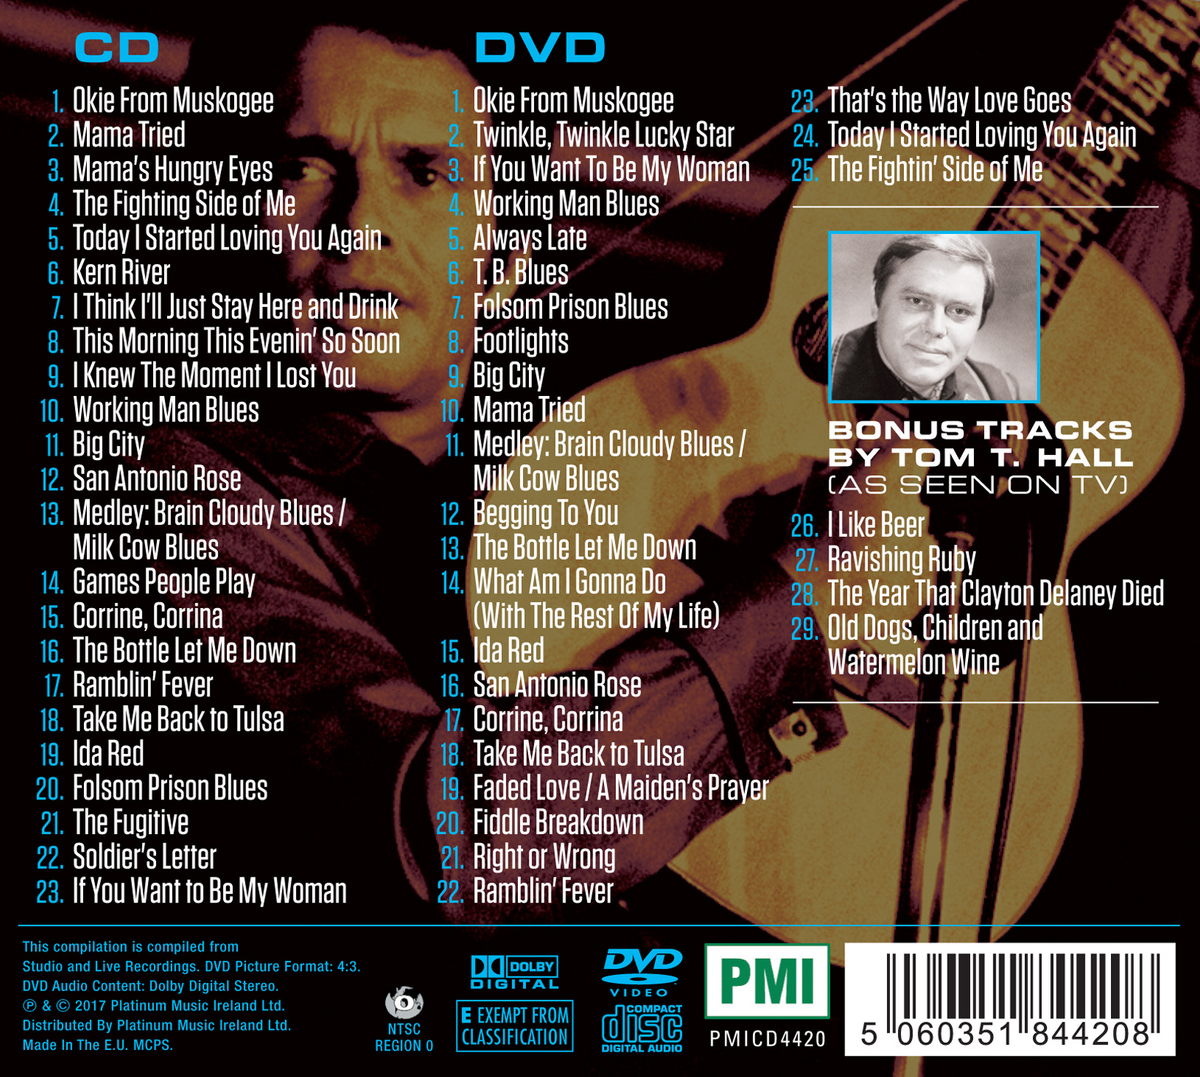 The Ultimate Collection Country Greats: Merle Haggard The Ultimate Collection (Deluxe Edition CD